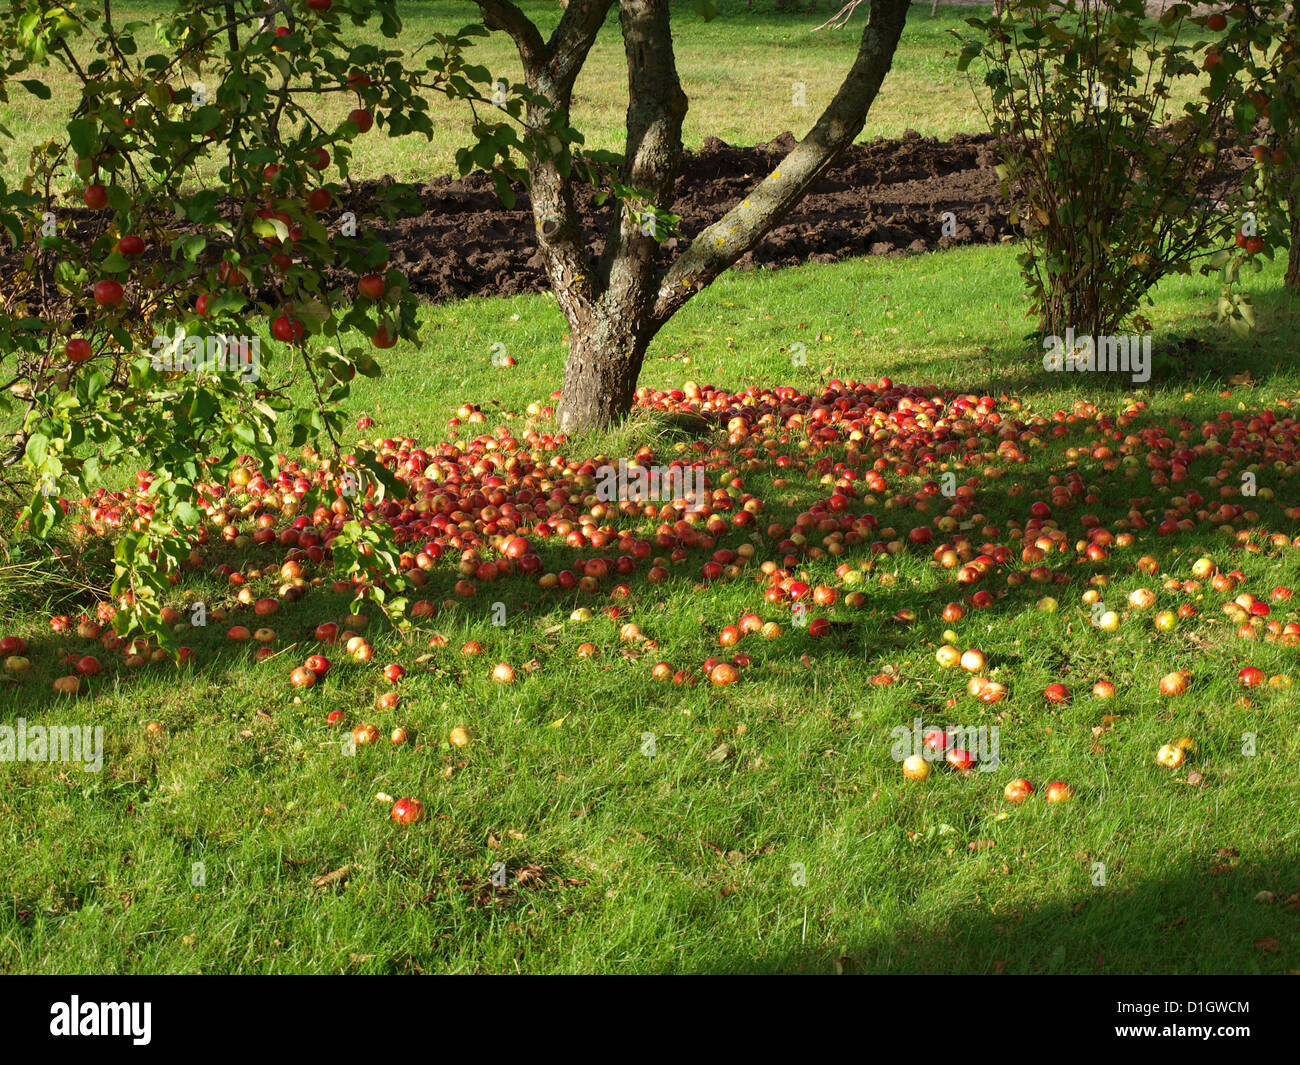 Lot Of Red Fallen Apples On Grass Under The Apple Tree